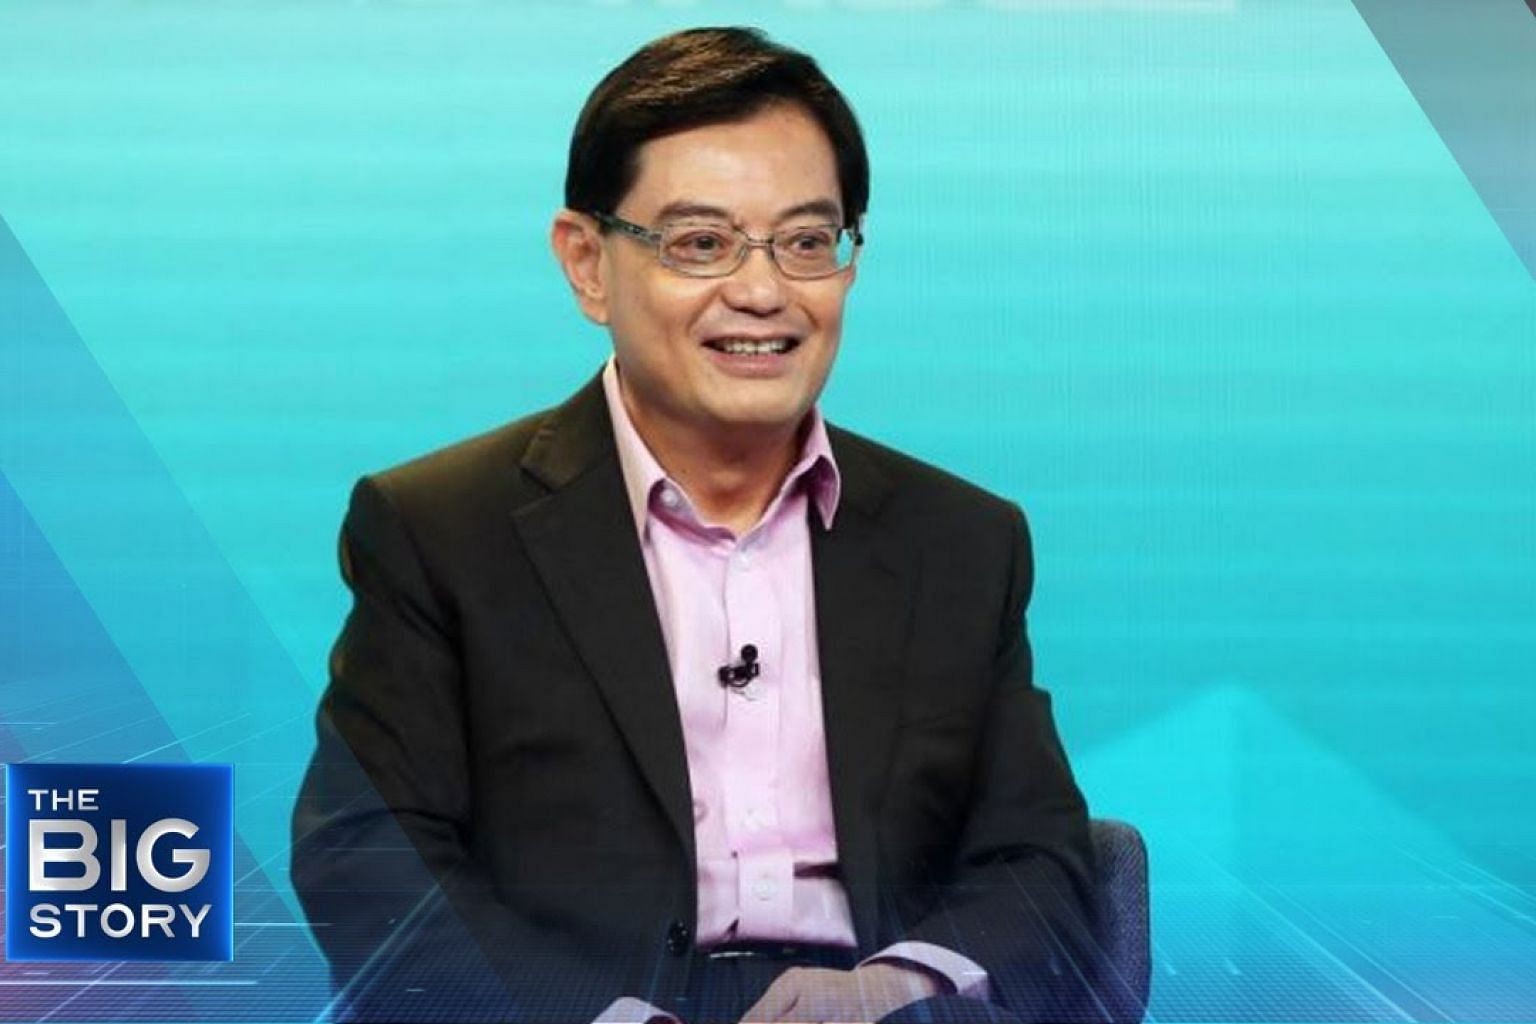 DPM Heng Swee Keat: Singapore, Emerging Stronger Together | THE BIG STORY